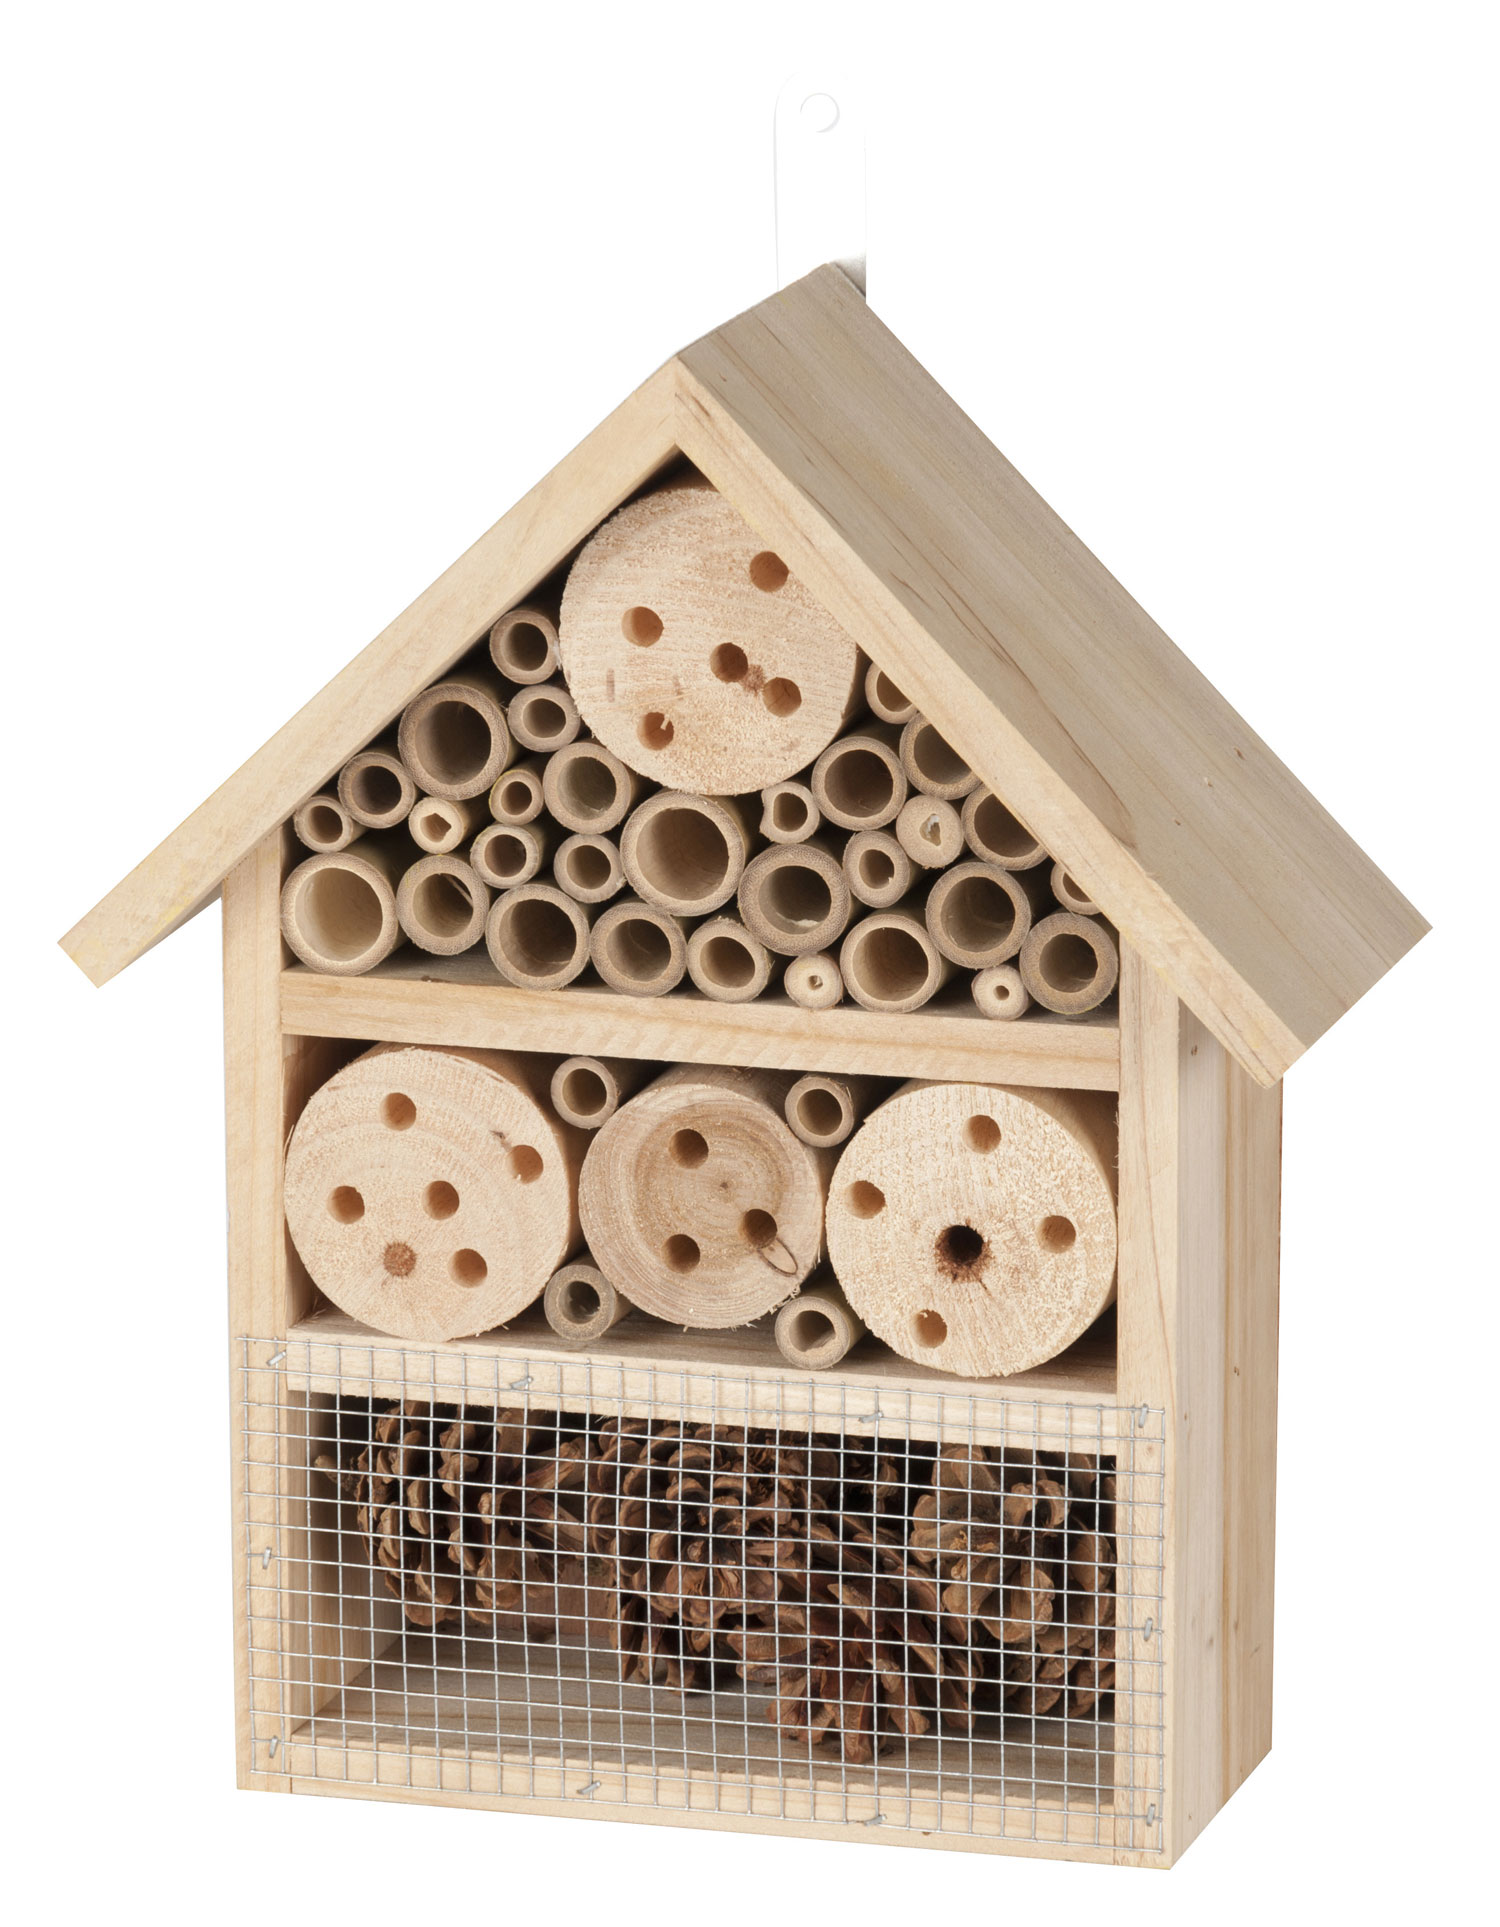 medium-wooden-bee-and-insect-hotel-395649-1.jpg